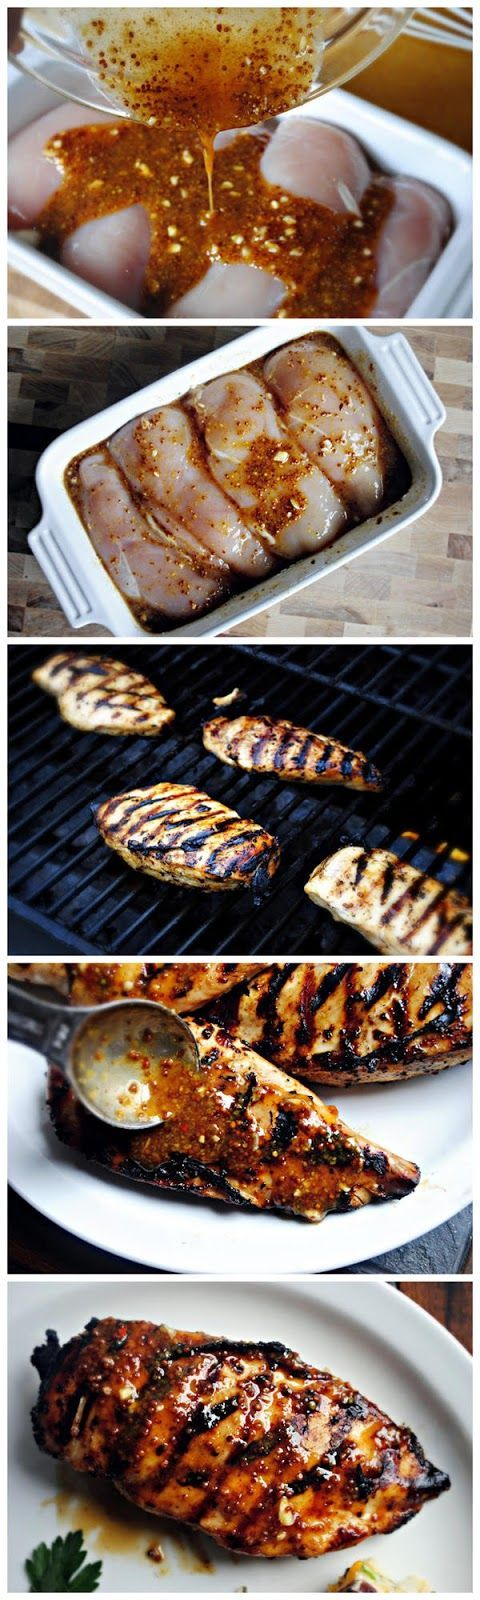 Grilled Honey Mustard Chicken Recipe - So Easy  Delicious !